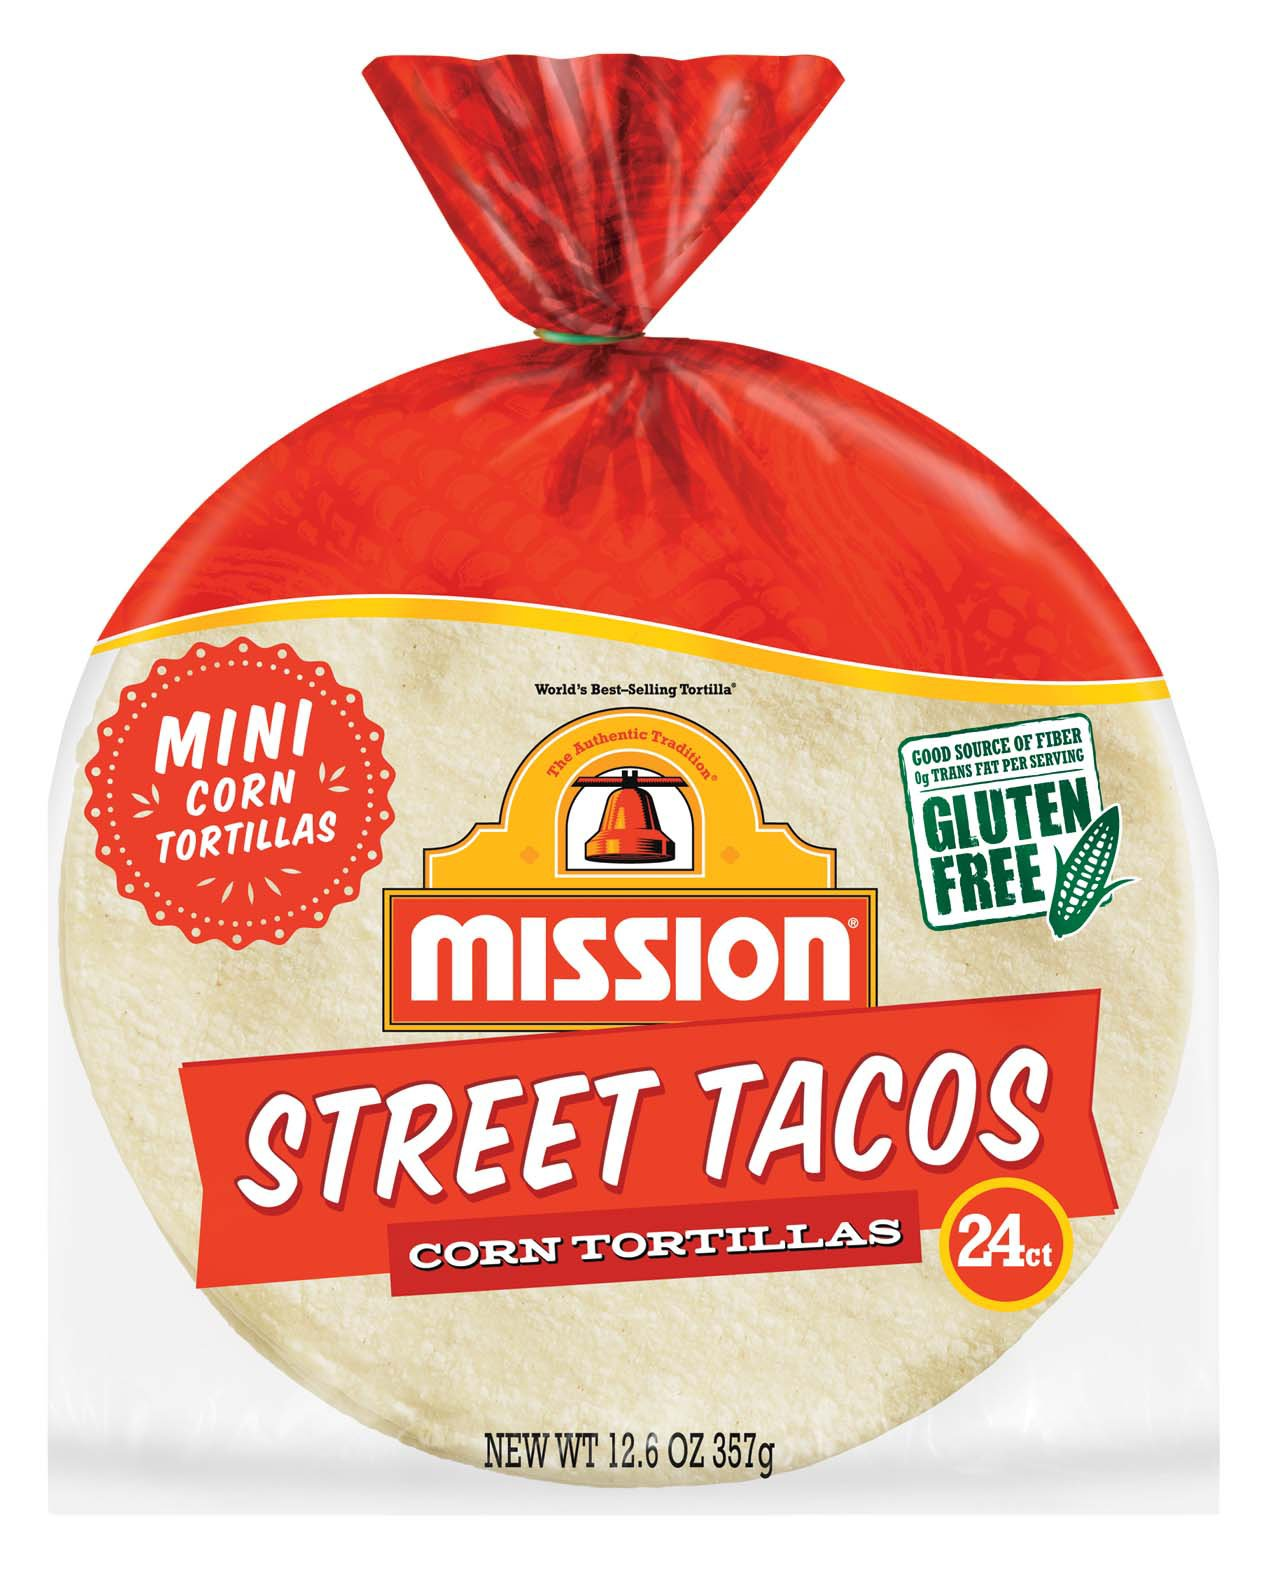 Mission Street Tacos Mini Corn Tortillas Shop Tortillas At H E B